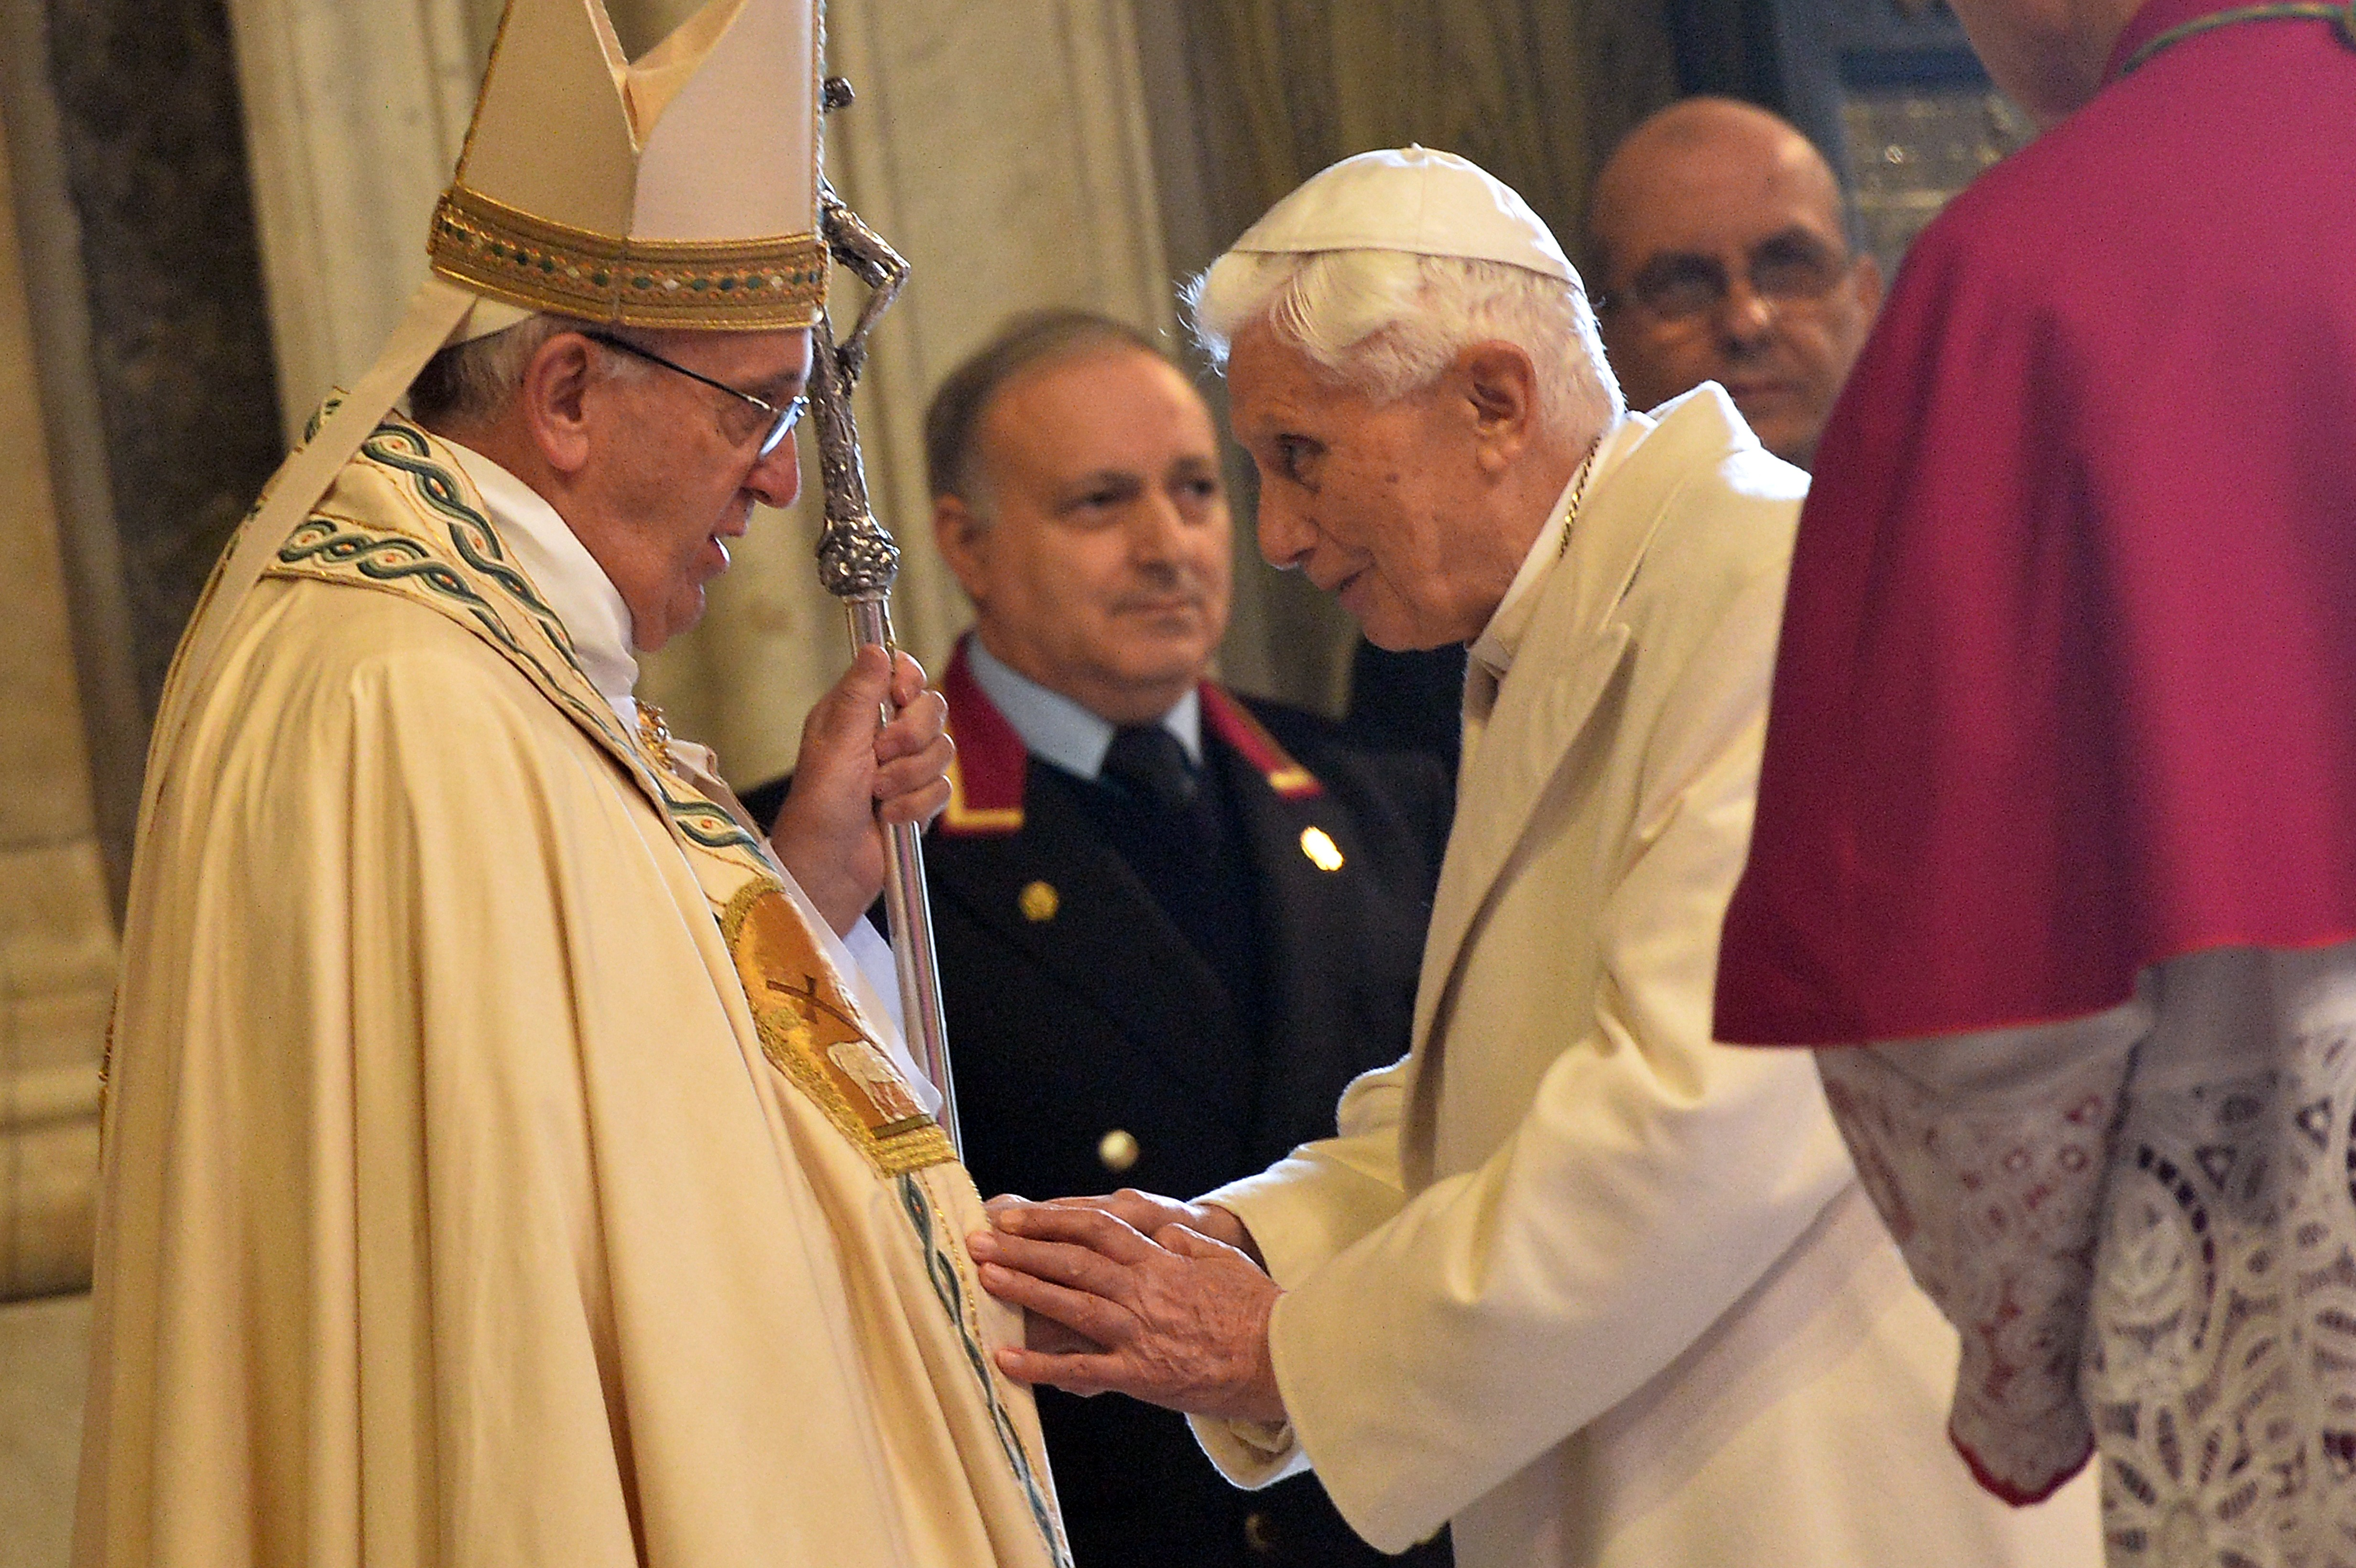 Pope Emeritus Benedict XVI (R) speaks to Pope Francis during the ceremony marking the start of the Jubilee Year of Mercy, on December 8, 2015 in Vatican. (ALBERTO PIZZOLI/AFP/Getty Images)